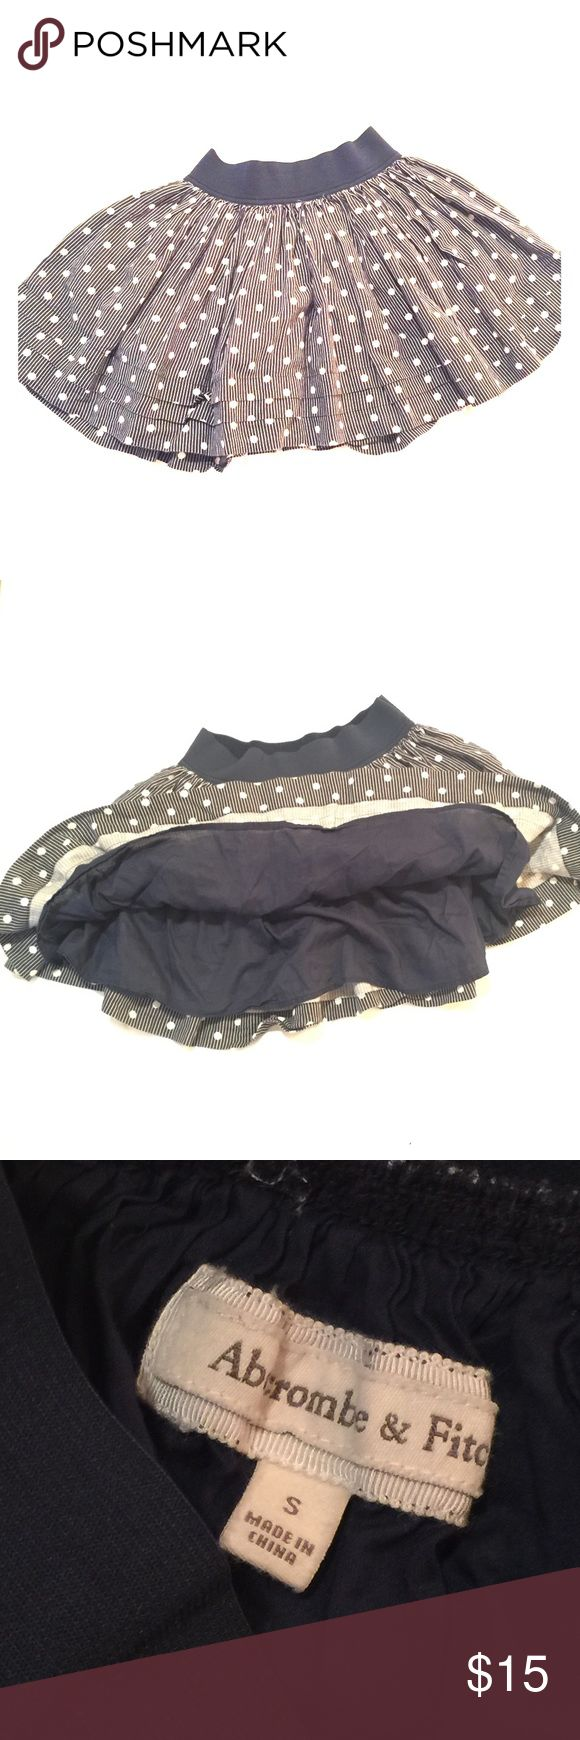 Abercrombie & Fitch Navy Blue and White Mini Skirt Navy Blue and White Mini Skirt with Elastic Waist. Abercrombie & Fitch Skirts Mini